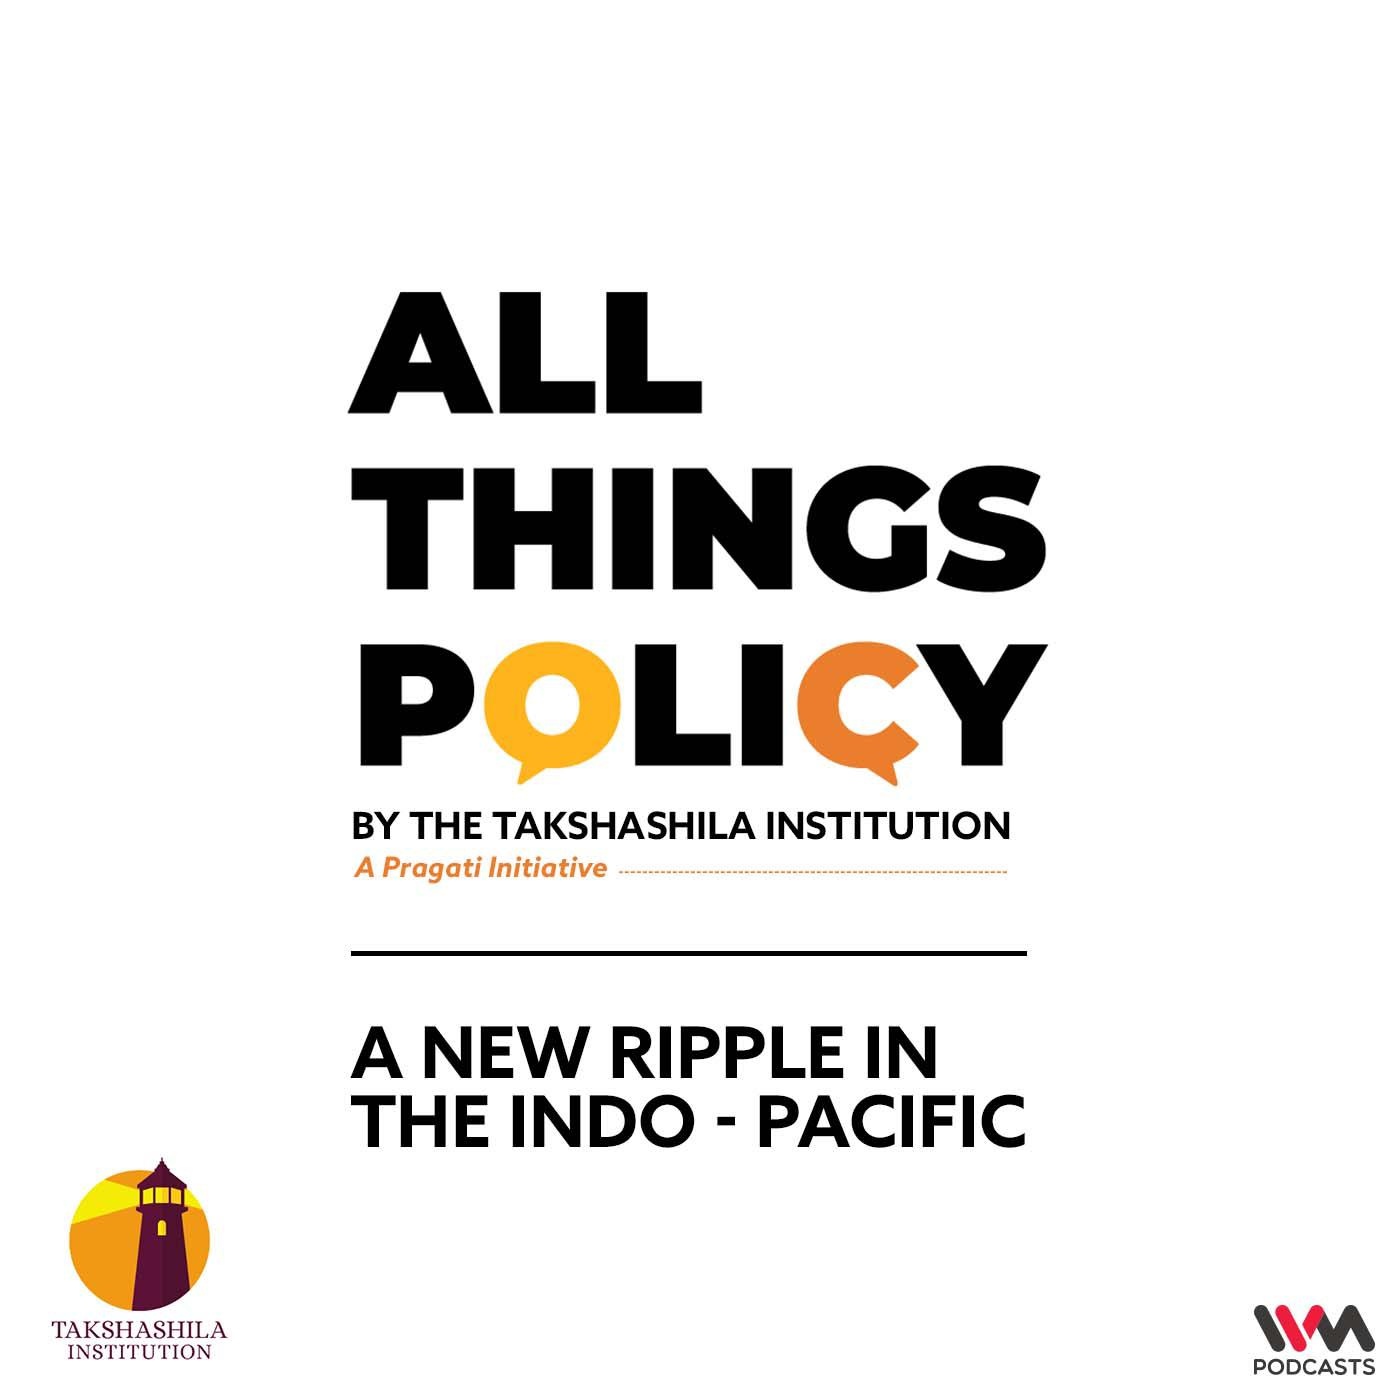 A New Ripple in the Indo-Pacific